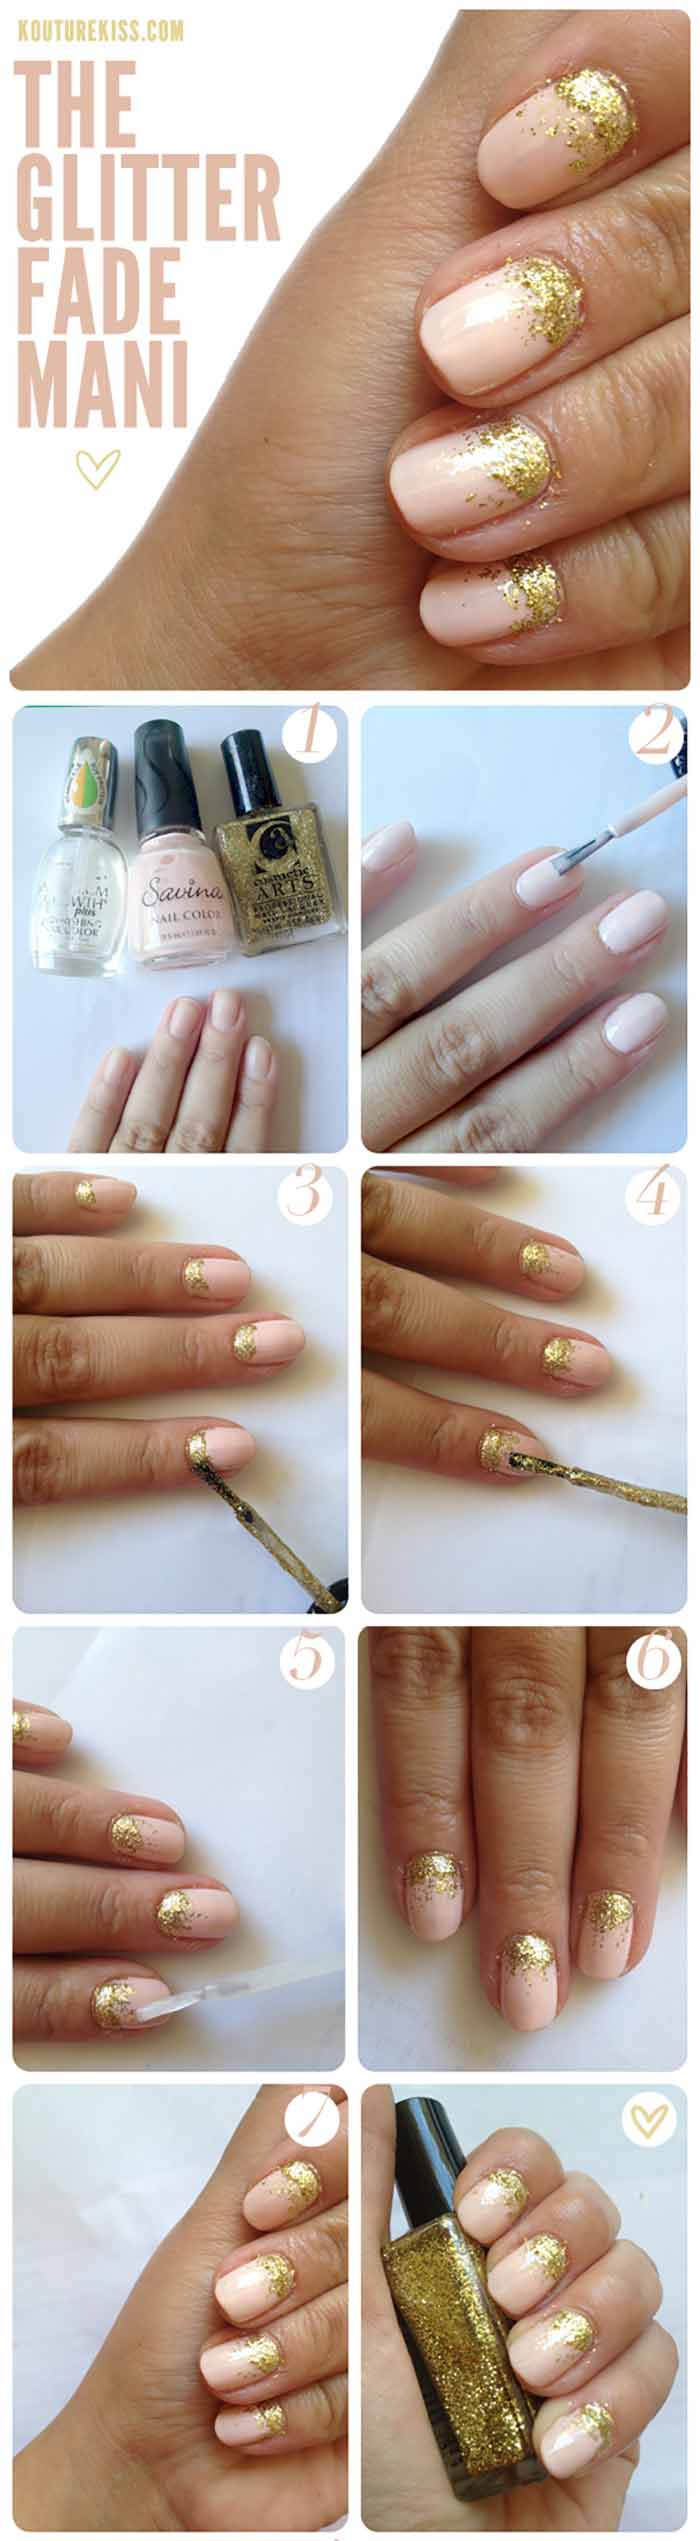 60 Trendy Nail Art Designs For Short Nails Innerline Beauty